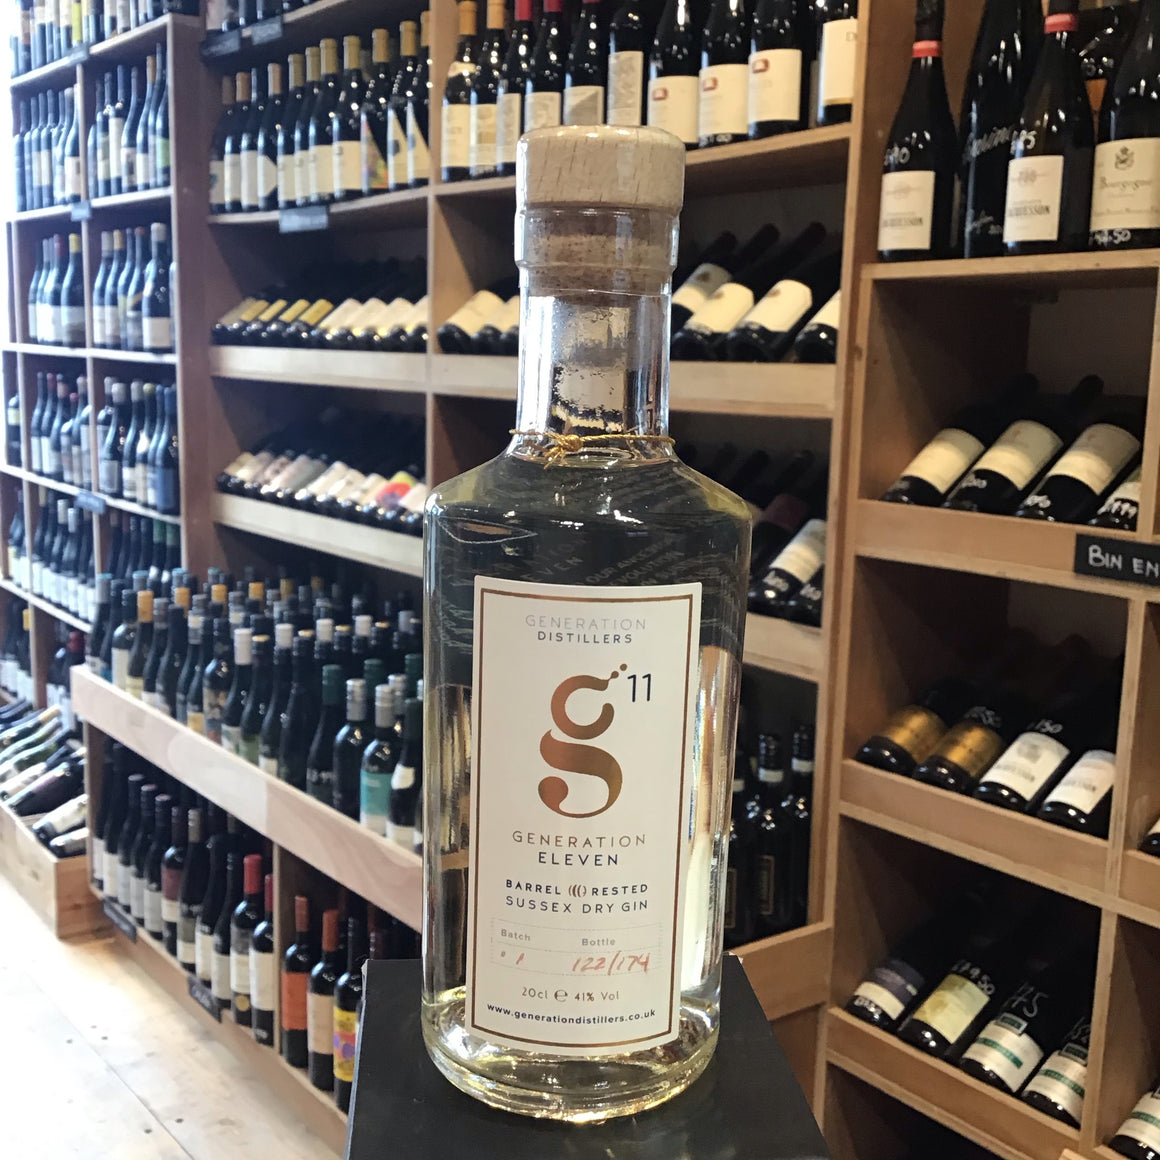 Generation 11 Barrel Rested Sussex Dry Gin 20cl 41%